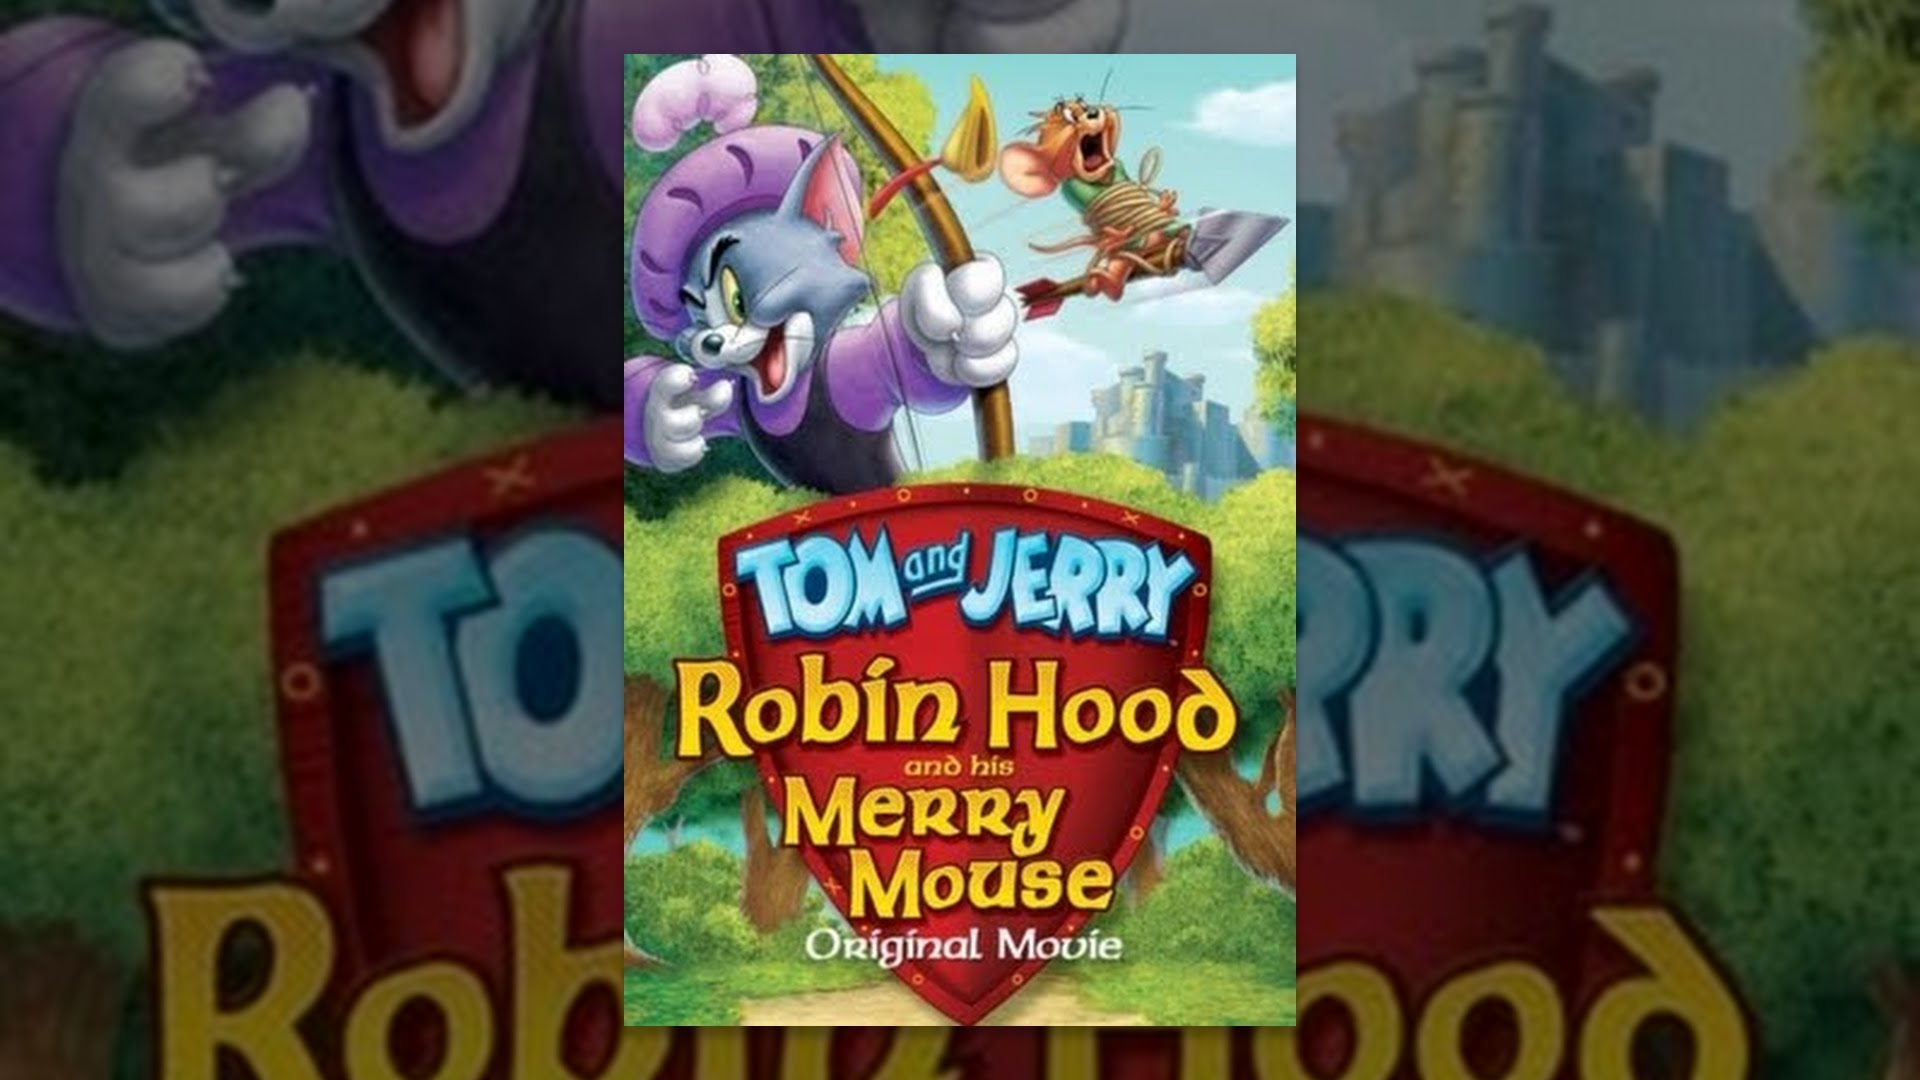 Download Tom and Jerry: Robin Hood and the Merry Mouse